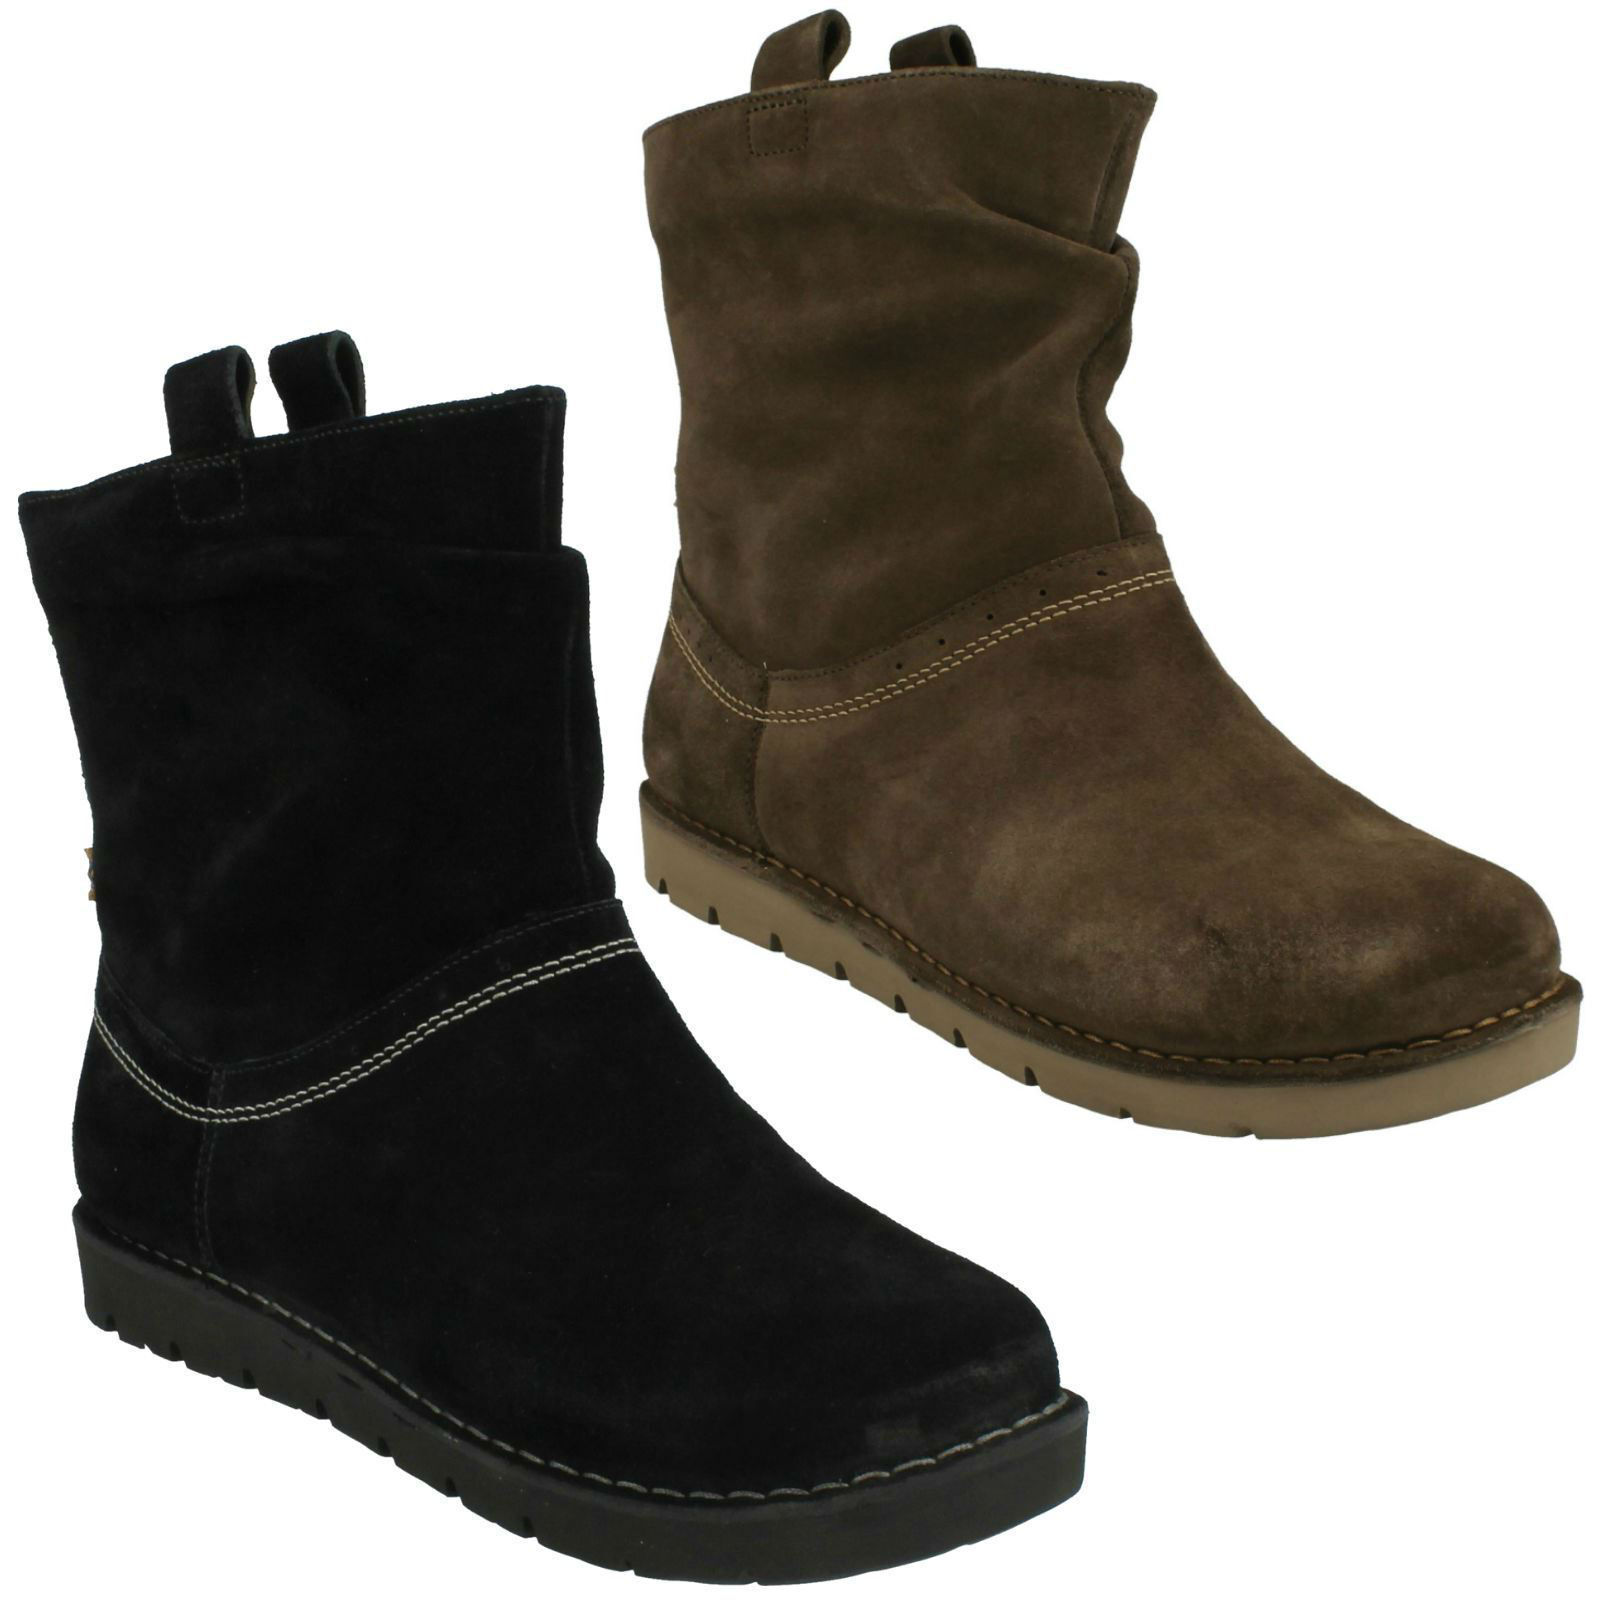 UN ASHBURN LADIES CLARKS UNSTRUCTURED PULL ON ANKLE FLAT CASUAL WIDE FIT ANKLE ON BOOTS 191c27